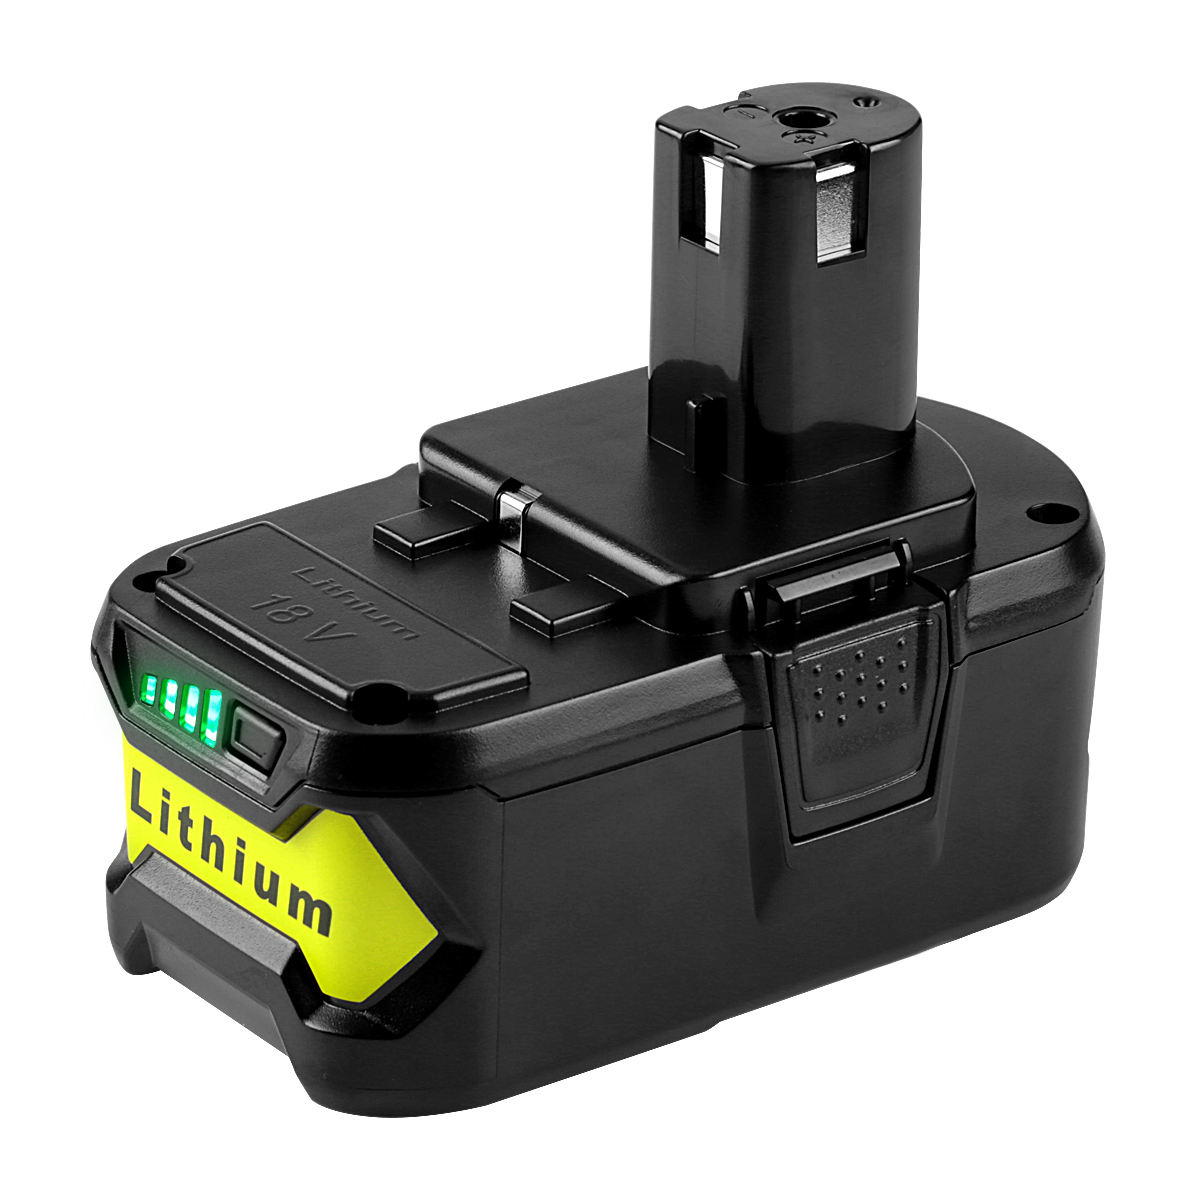 Energup A23 18v 4.0Ah battery pack for cordless drill P104 P105 P106 P107 P108 P118 P119 ryobi 18v battery